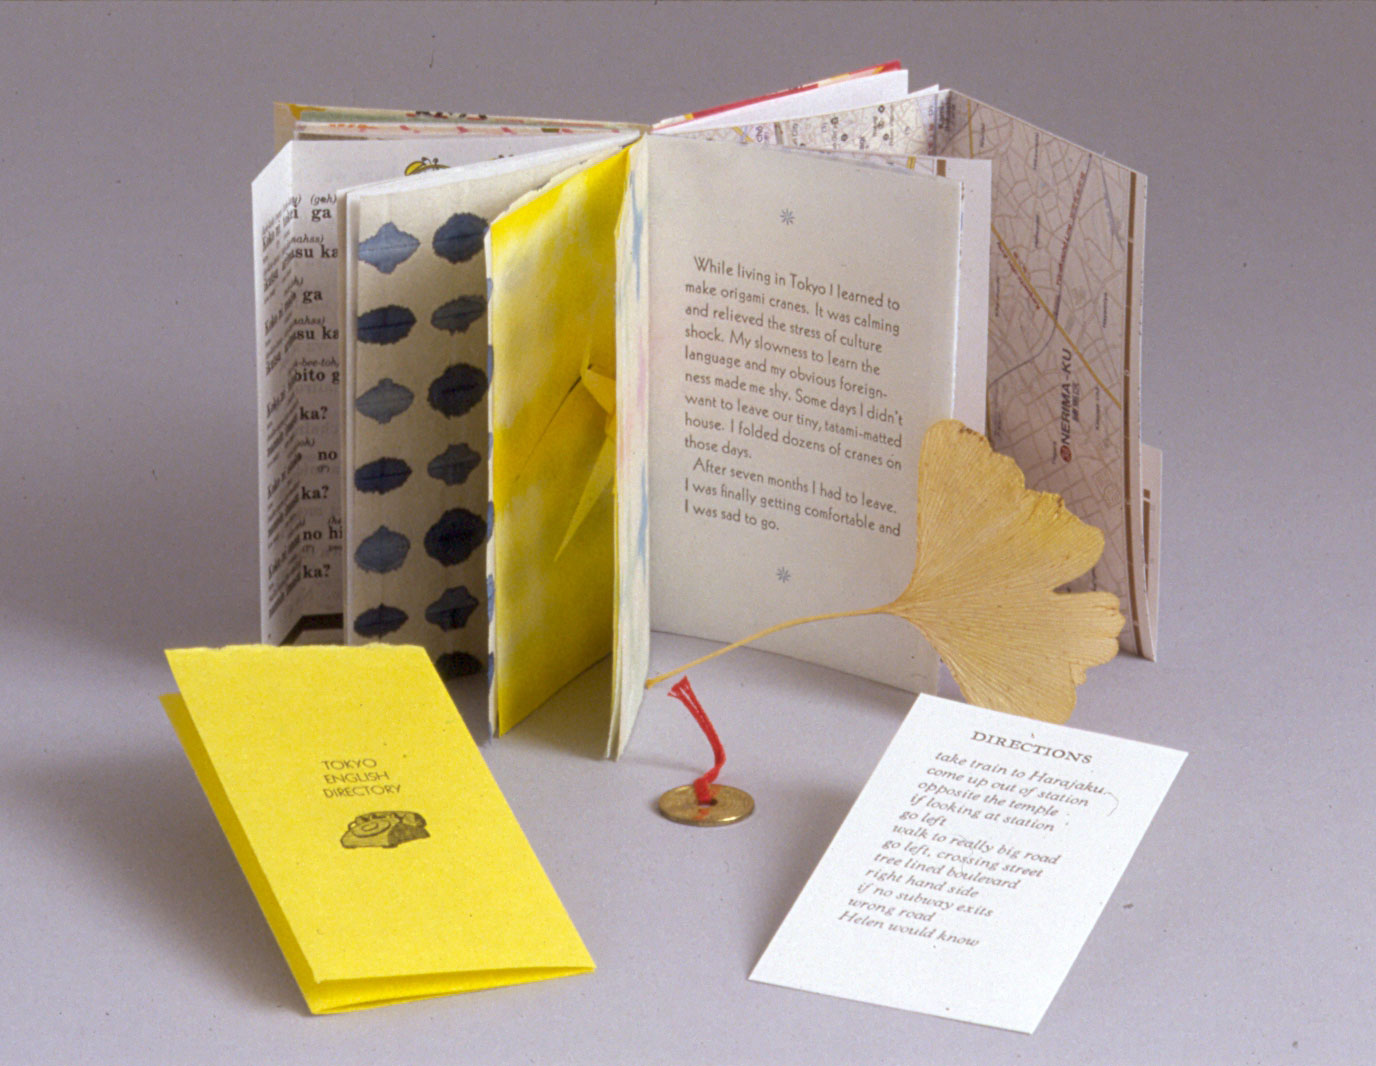 Lost In Japan  ,1999. A collection of micro-memoir pieces, poem, and phonebook, letterpress printed and folded into a scrapbook between sewn-in vintage Japanese papers along with maps, Japanese language book pages, a gingko leaf, and prints from coins and a gingko leaf.